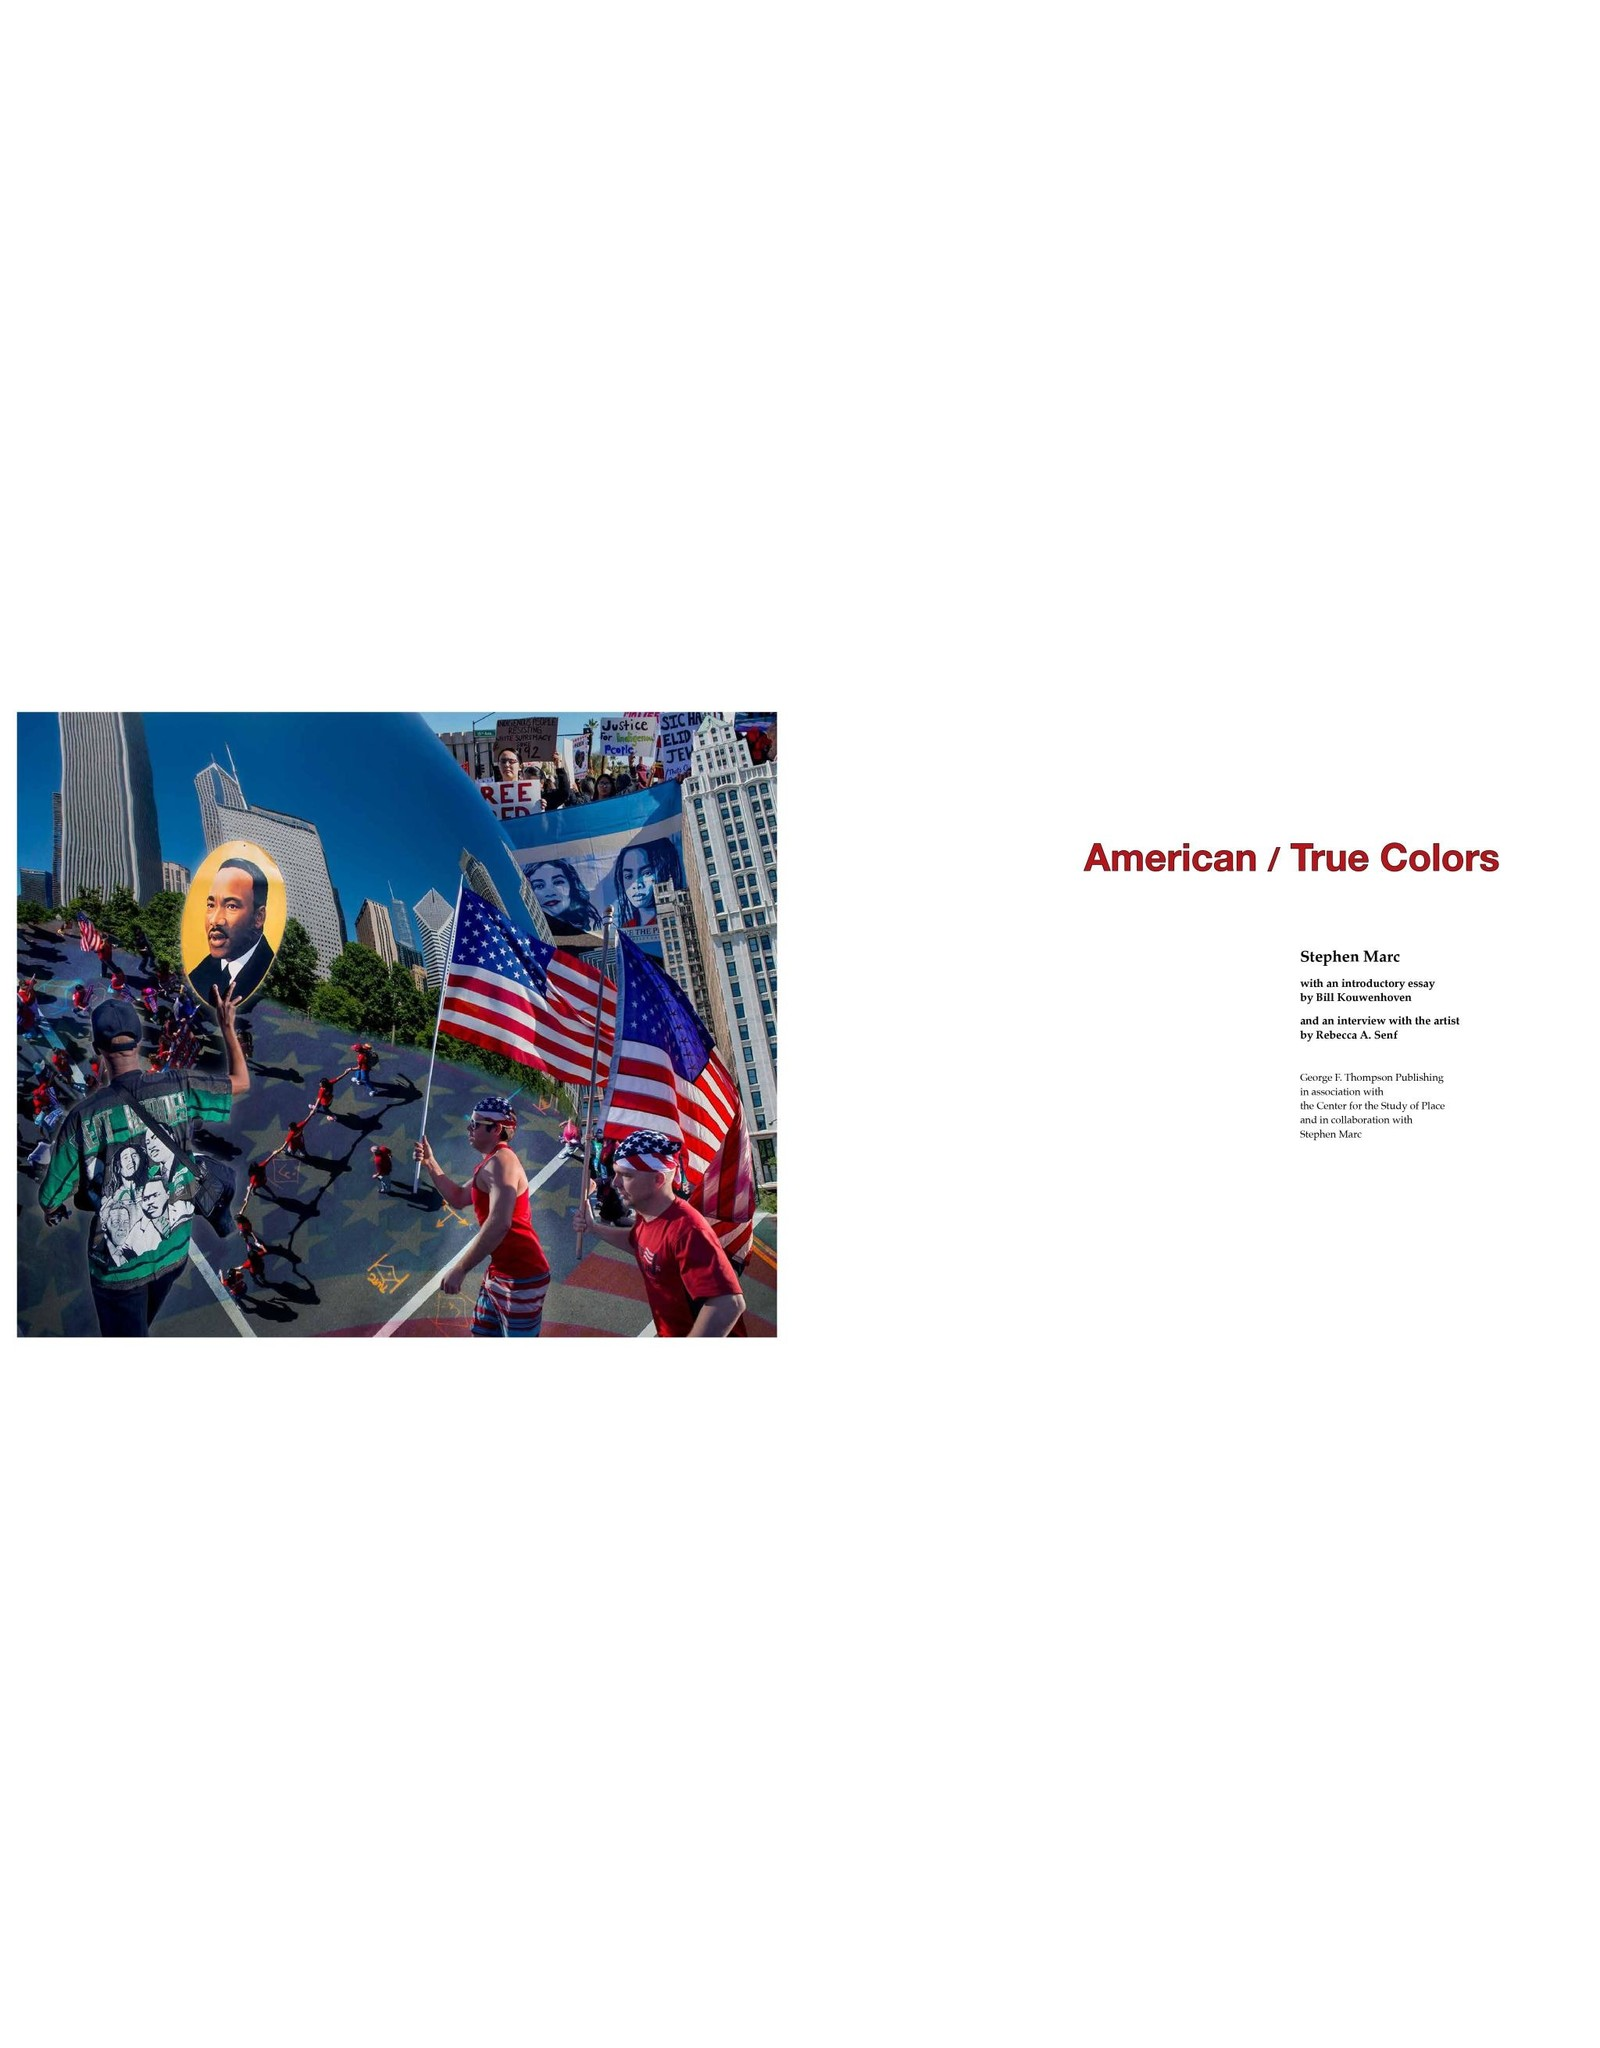 Stephen Marc: American / True Colors